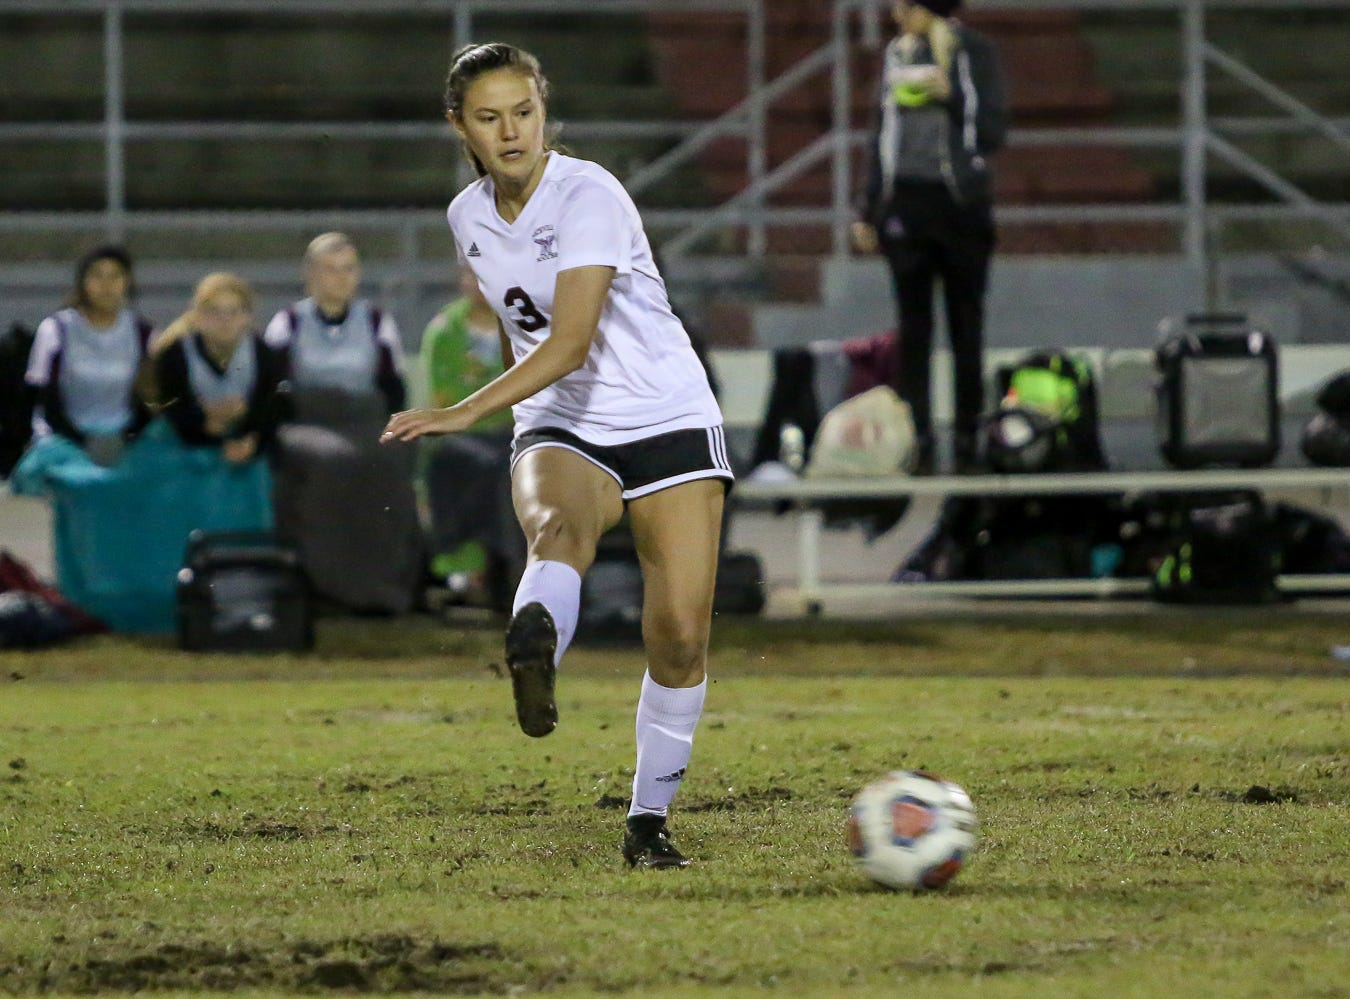 Niceville's Brayden Thomas (3) passes the ball against Navarre in a District 1-4A showdown of unbeaten teams at Navarre High School on Tuesday, December 4, 2018. The game ended in a 1-1 tie.